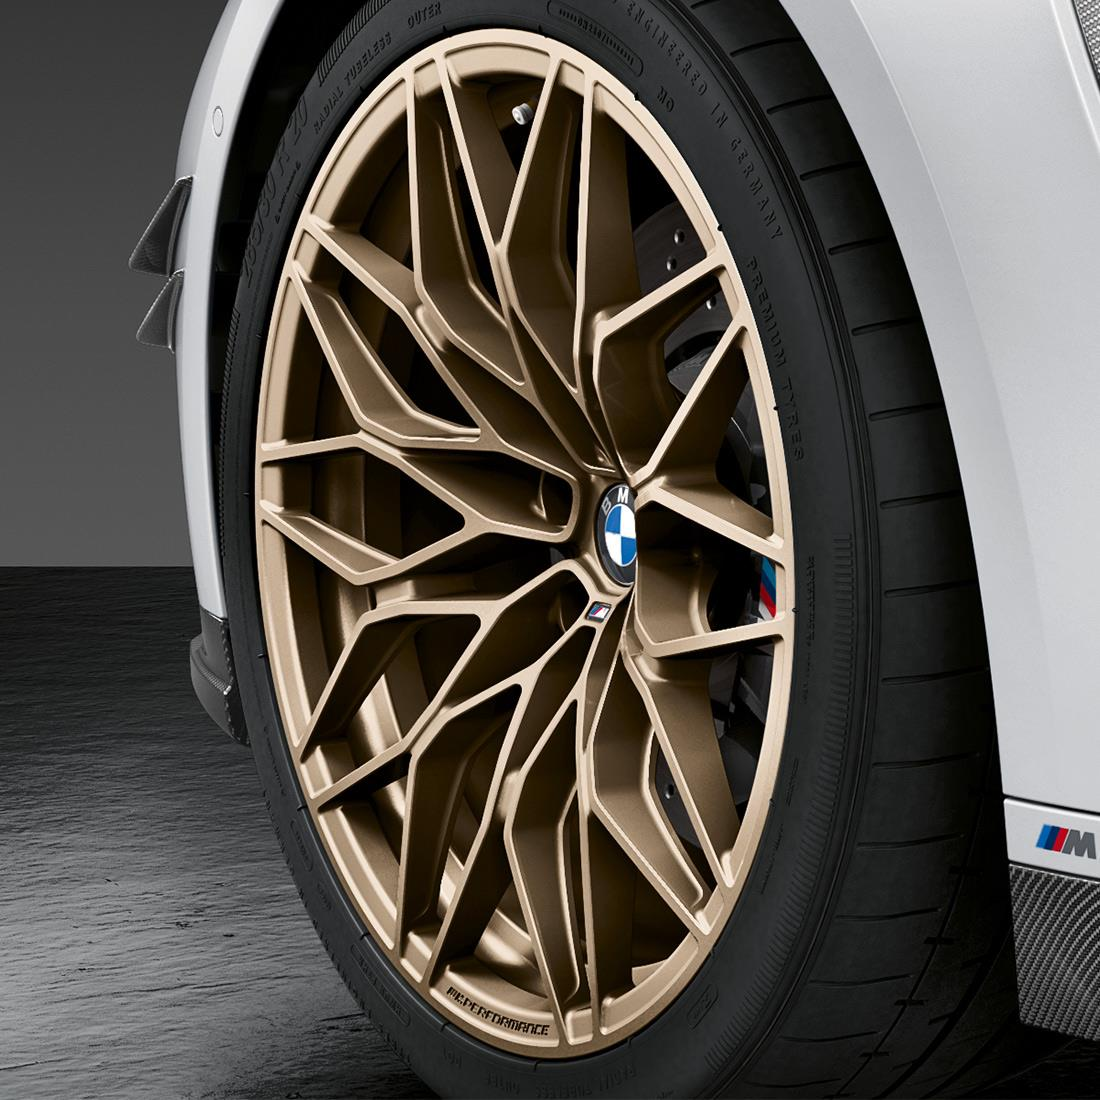 20/21-inch M Performance forged wheel Cross-spoke 1000 M Frozen Goldbronze, summer complete wheel set